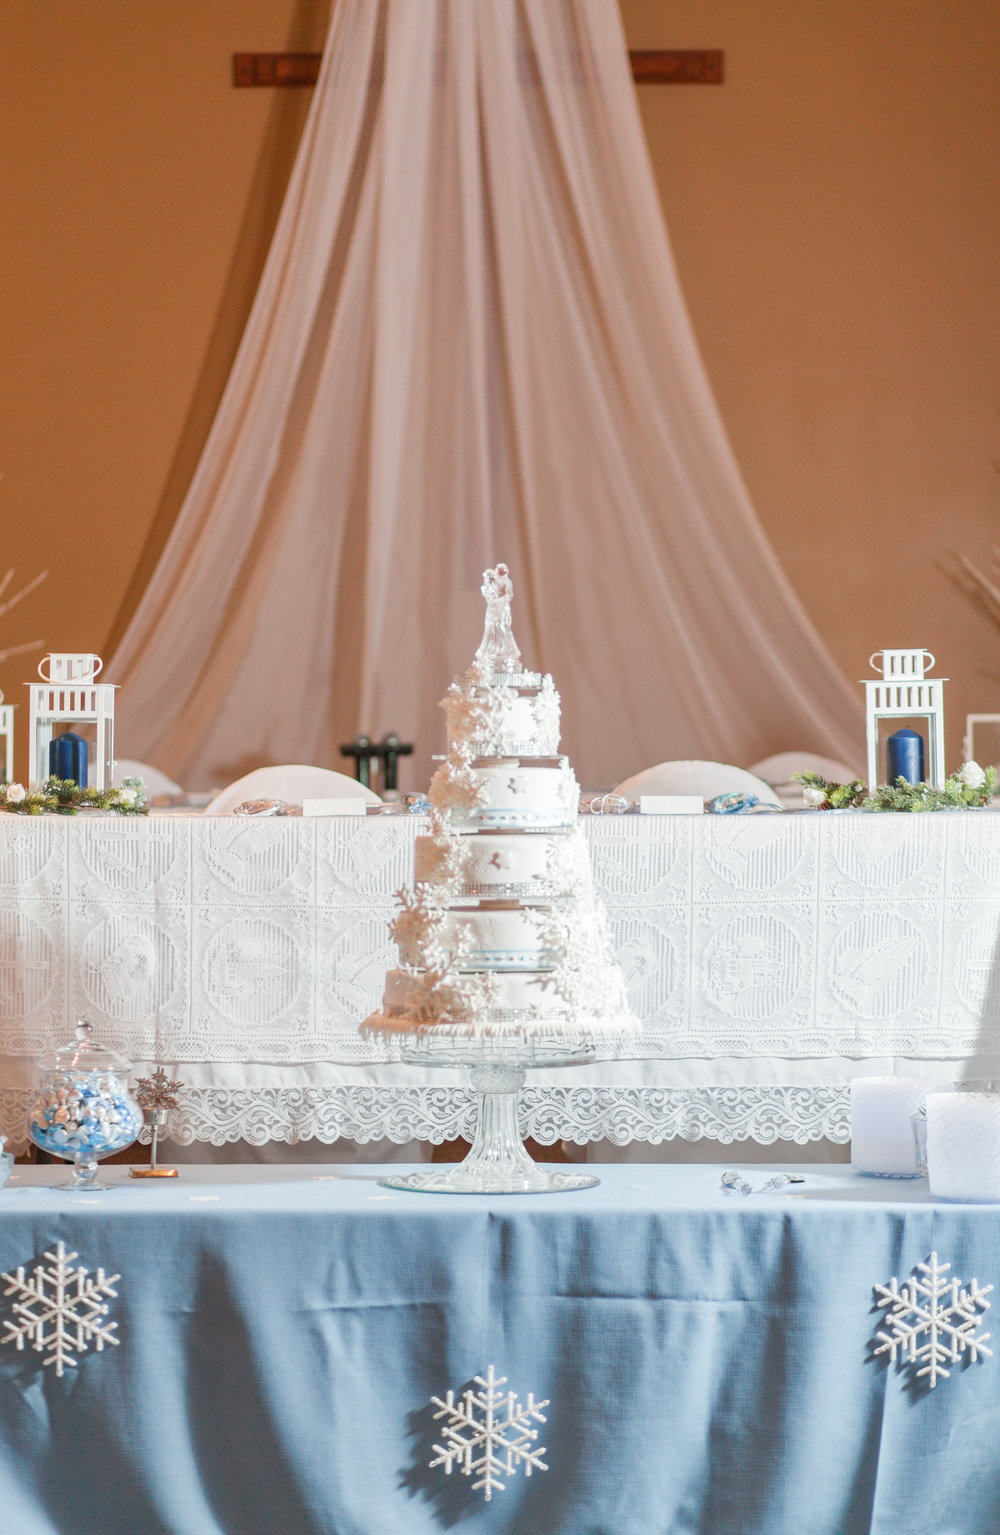 winter wedding snowflake cake with glass topper to look like ice